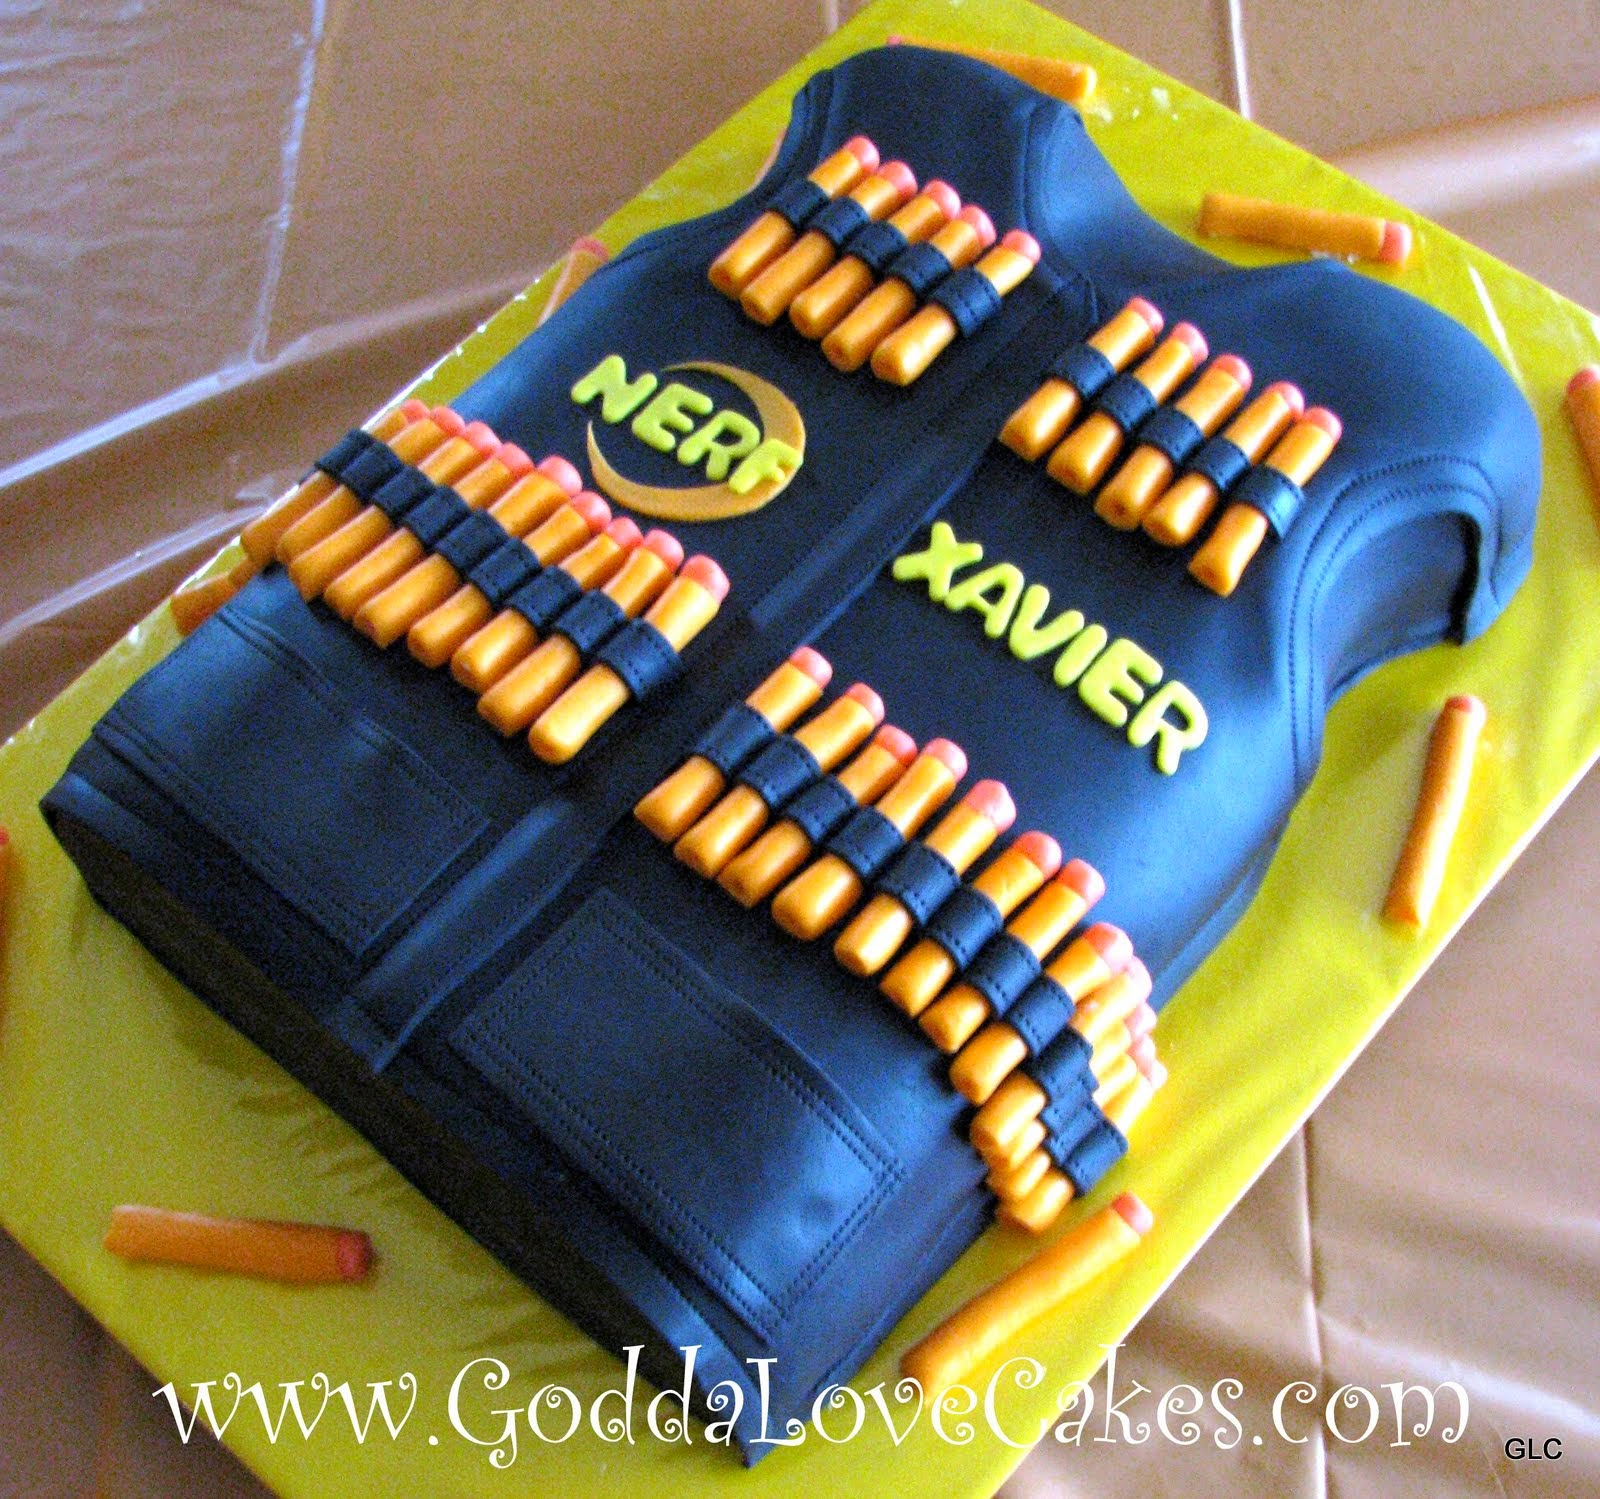 Pin Nerf Gun Birthday Party Ideas Submited Images Pic2fly Cake on Pinterest